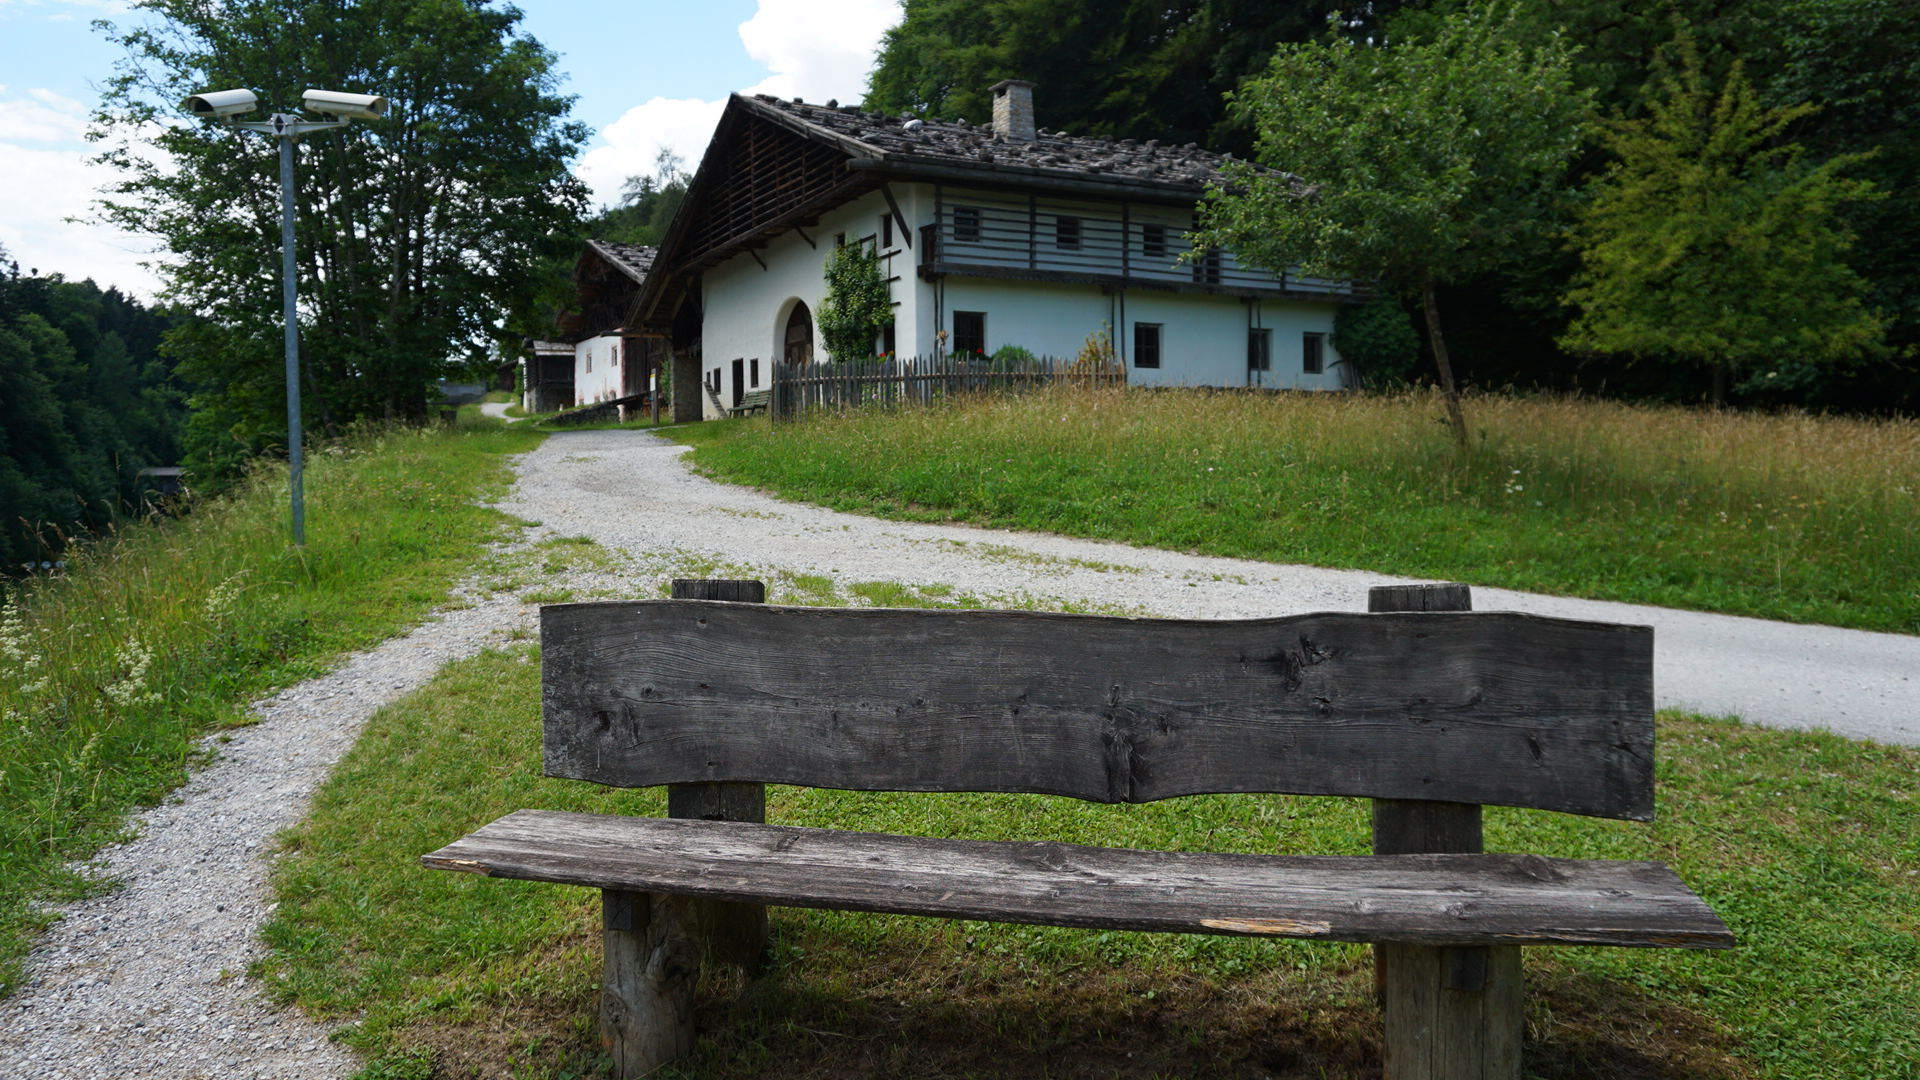 Top places to visit in Tyrol this summer